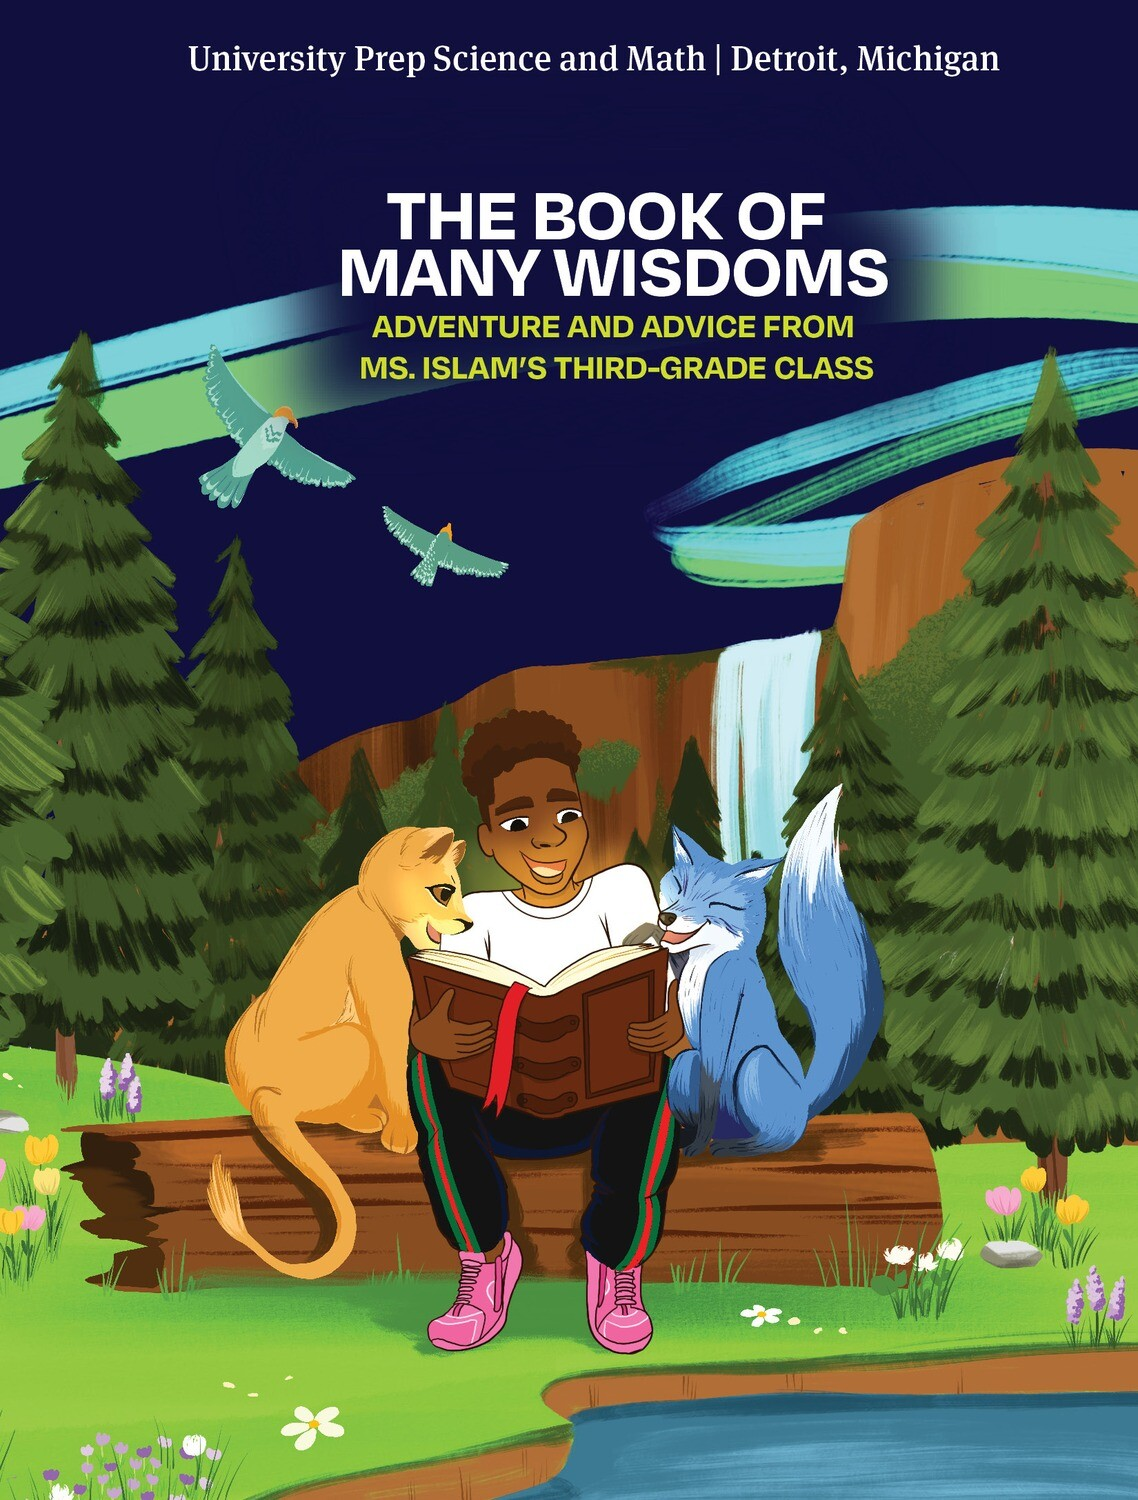 The Book of Many Wisdoms